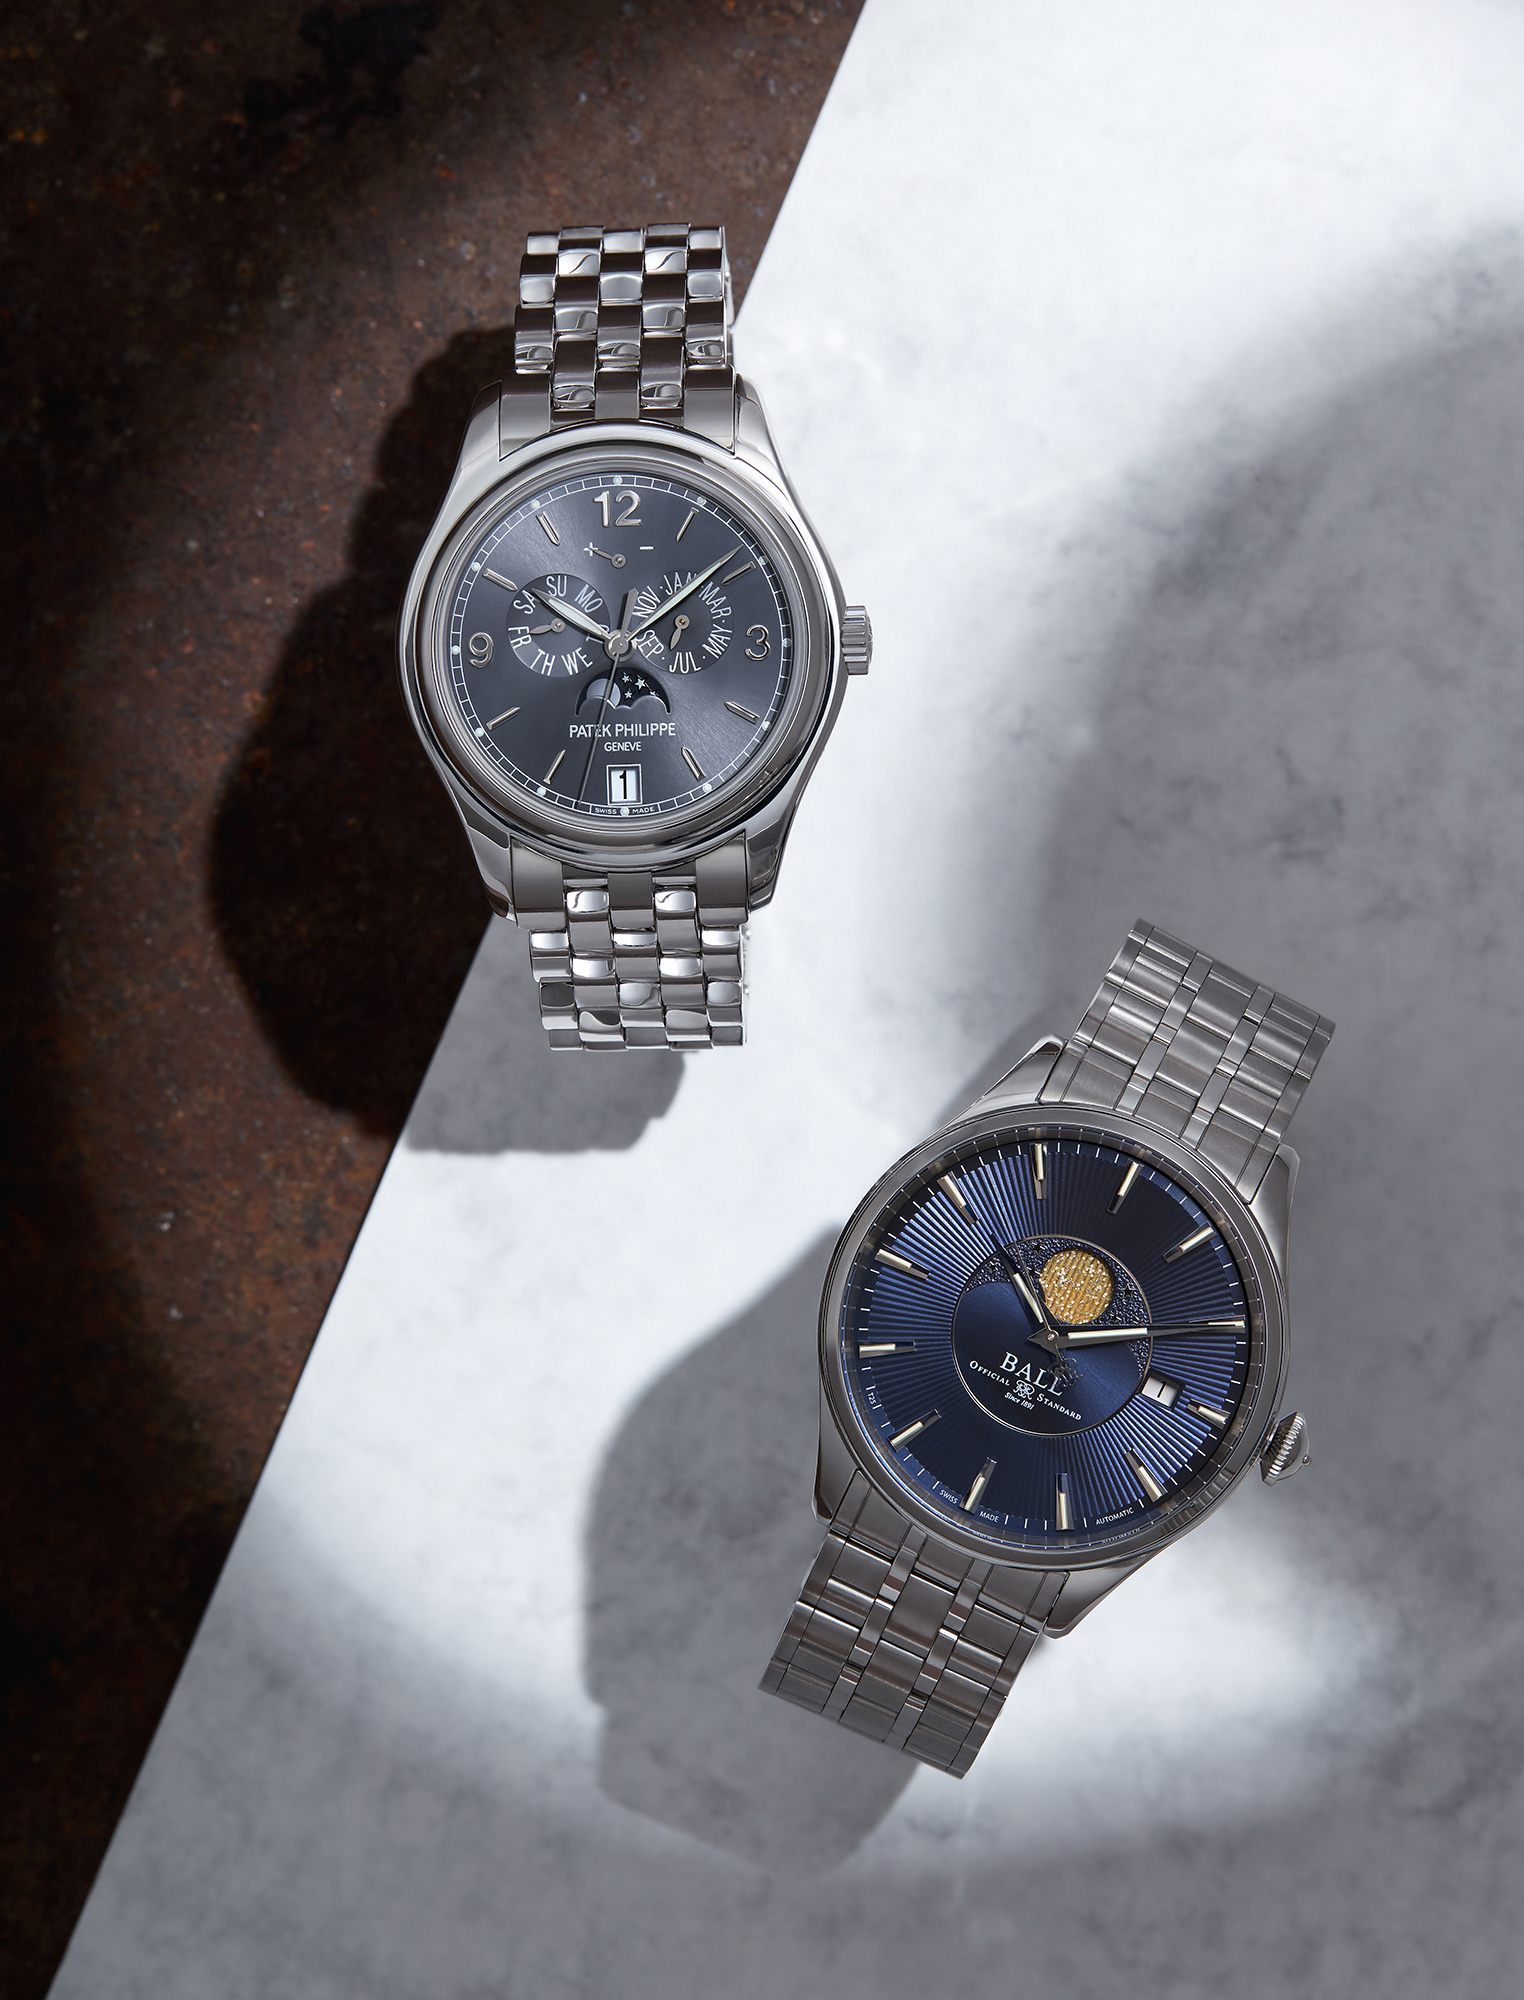 From left to right: Gentleman's self-winding Annual Calendar bracelet in white gold with slate grey sunburst dial, £50,610, PATEK PHILIPPE; Trainmaster Moonphase, £1,750, BALL